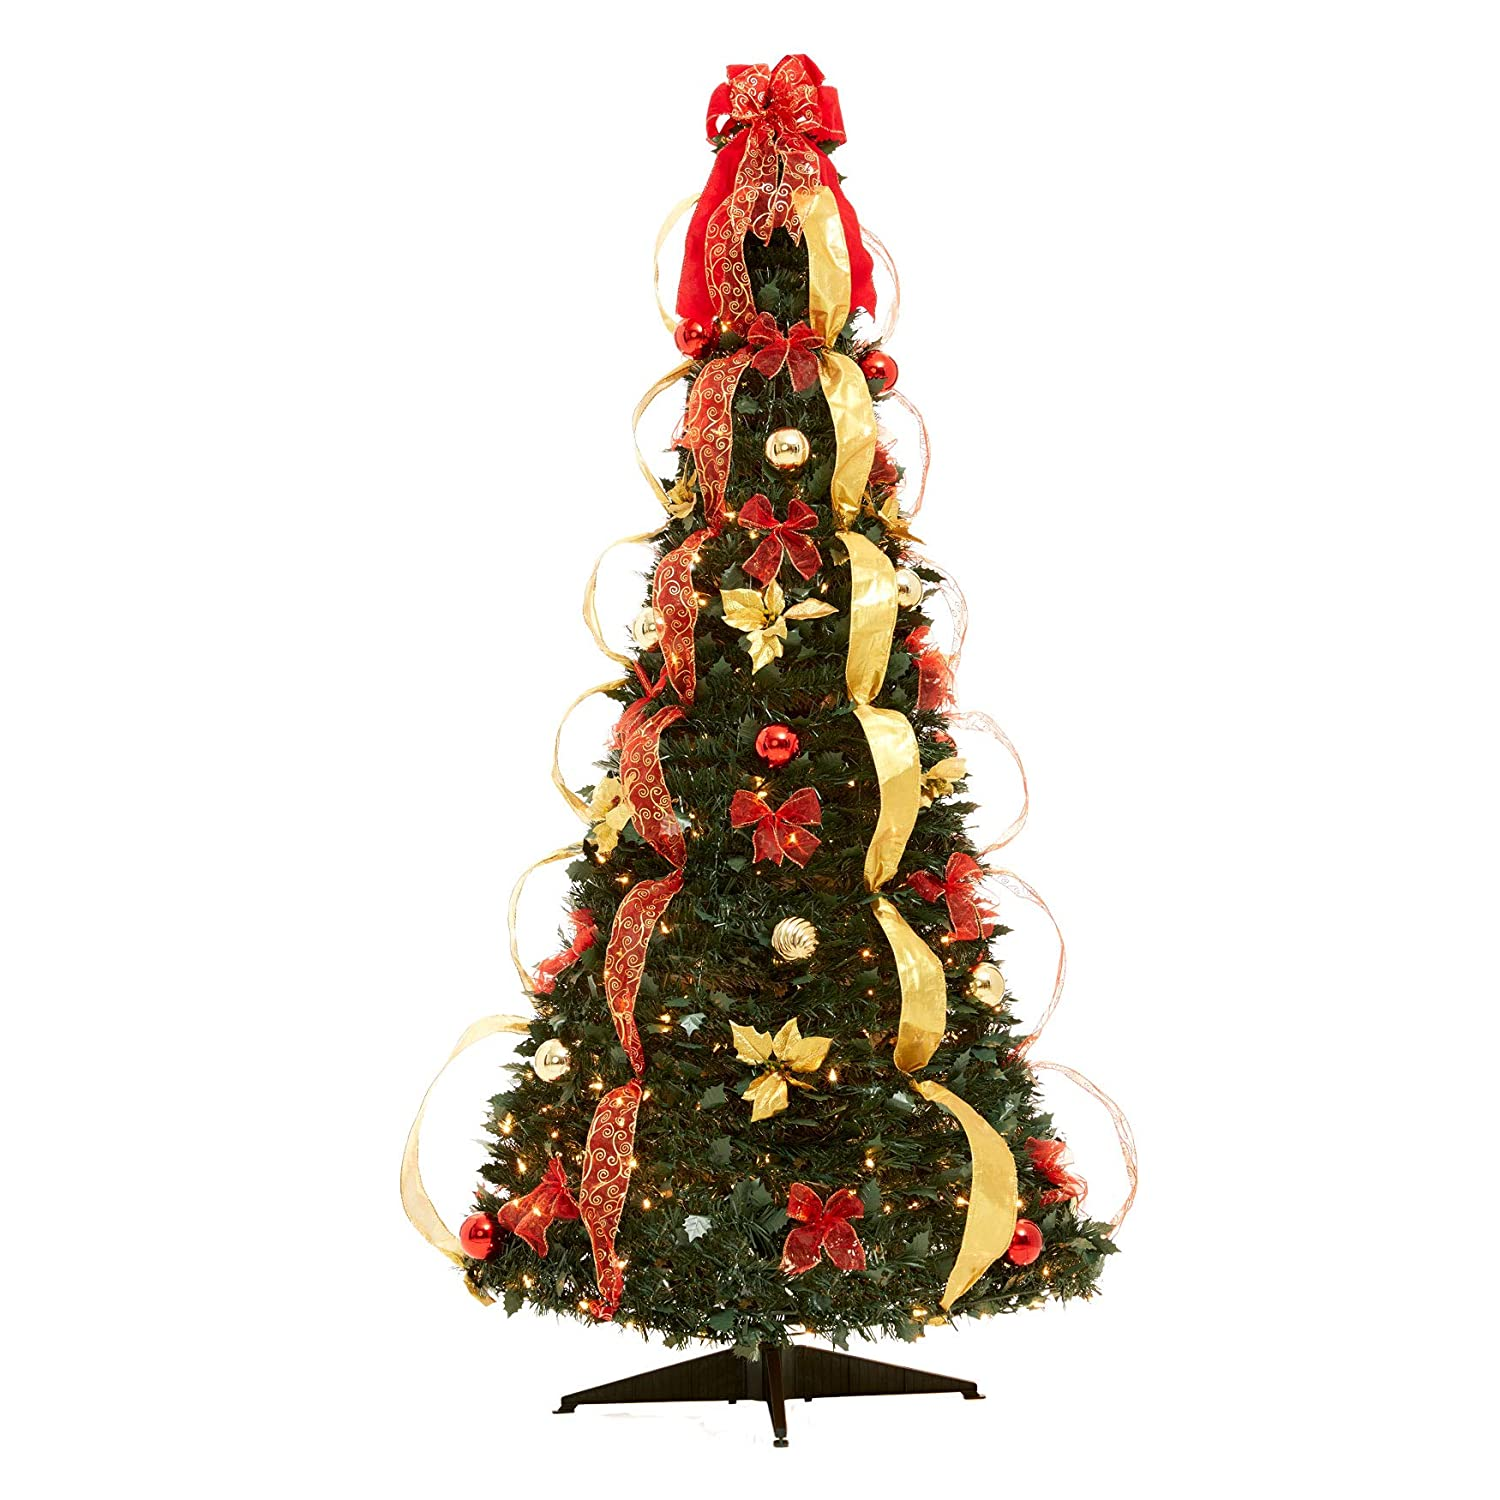 Argos Fiber Optic Christmas Trees: Pre Lit And Decorated Christmas Trees Uk